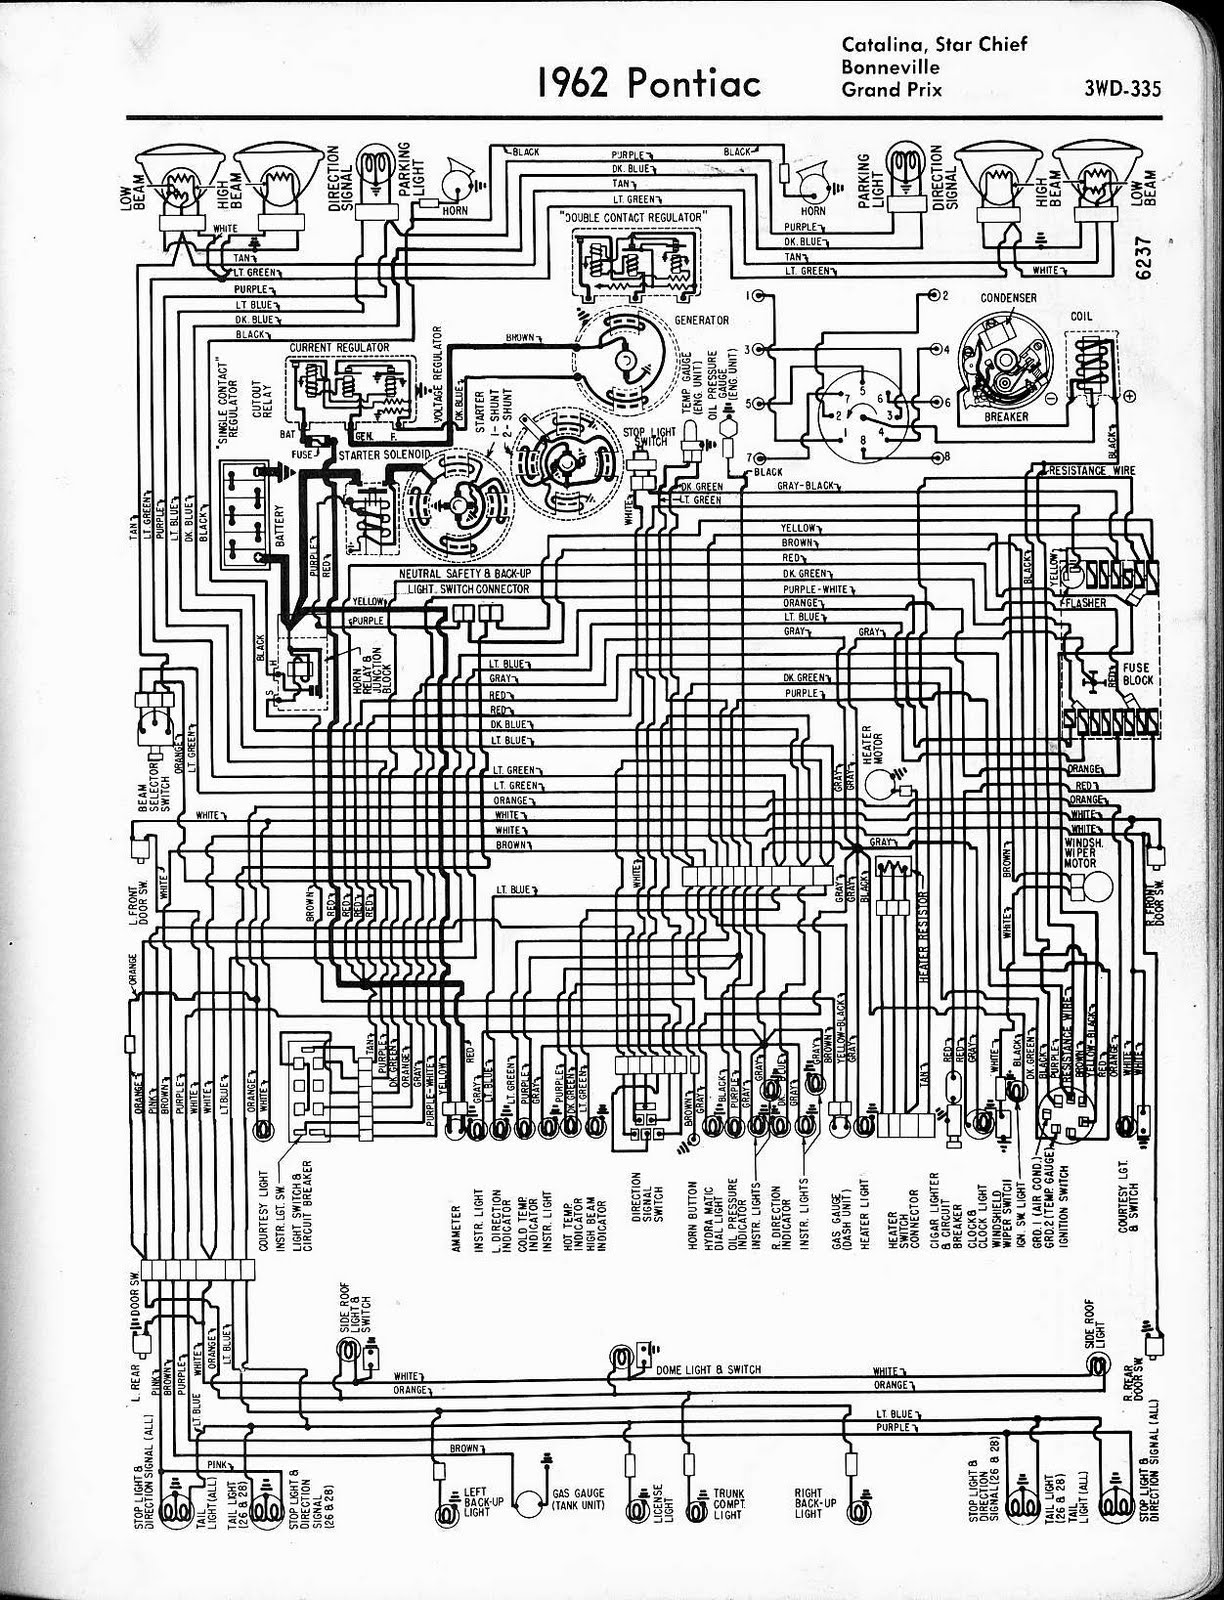 1972 pontiac lemans wiring diagram 1972 image 1972 pontiac wiring diagram 1972 auto wiring diagram schematic on 1972 pontiac lemans wiring diagram